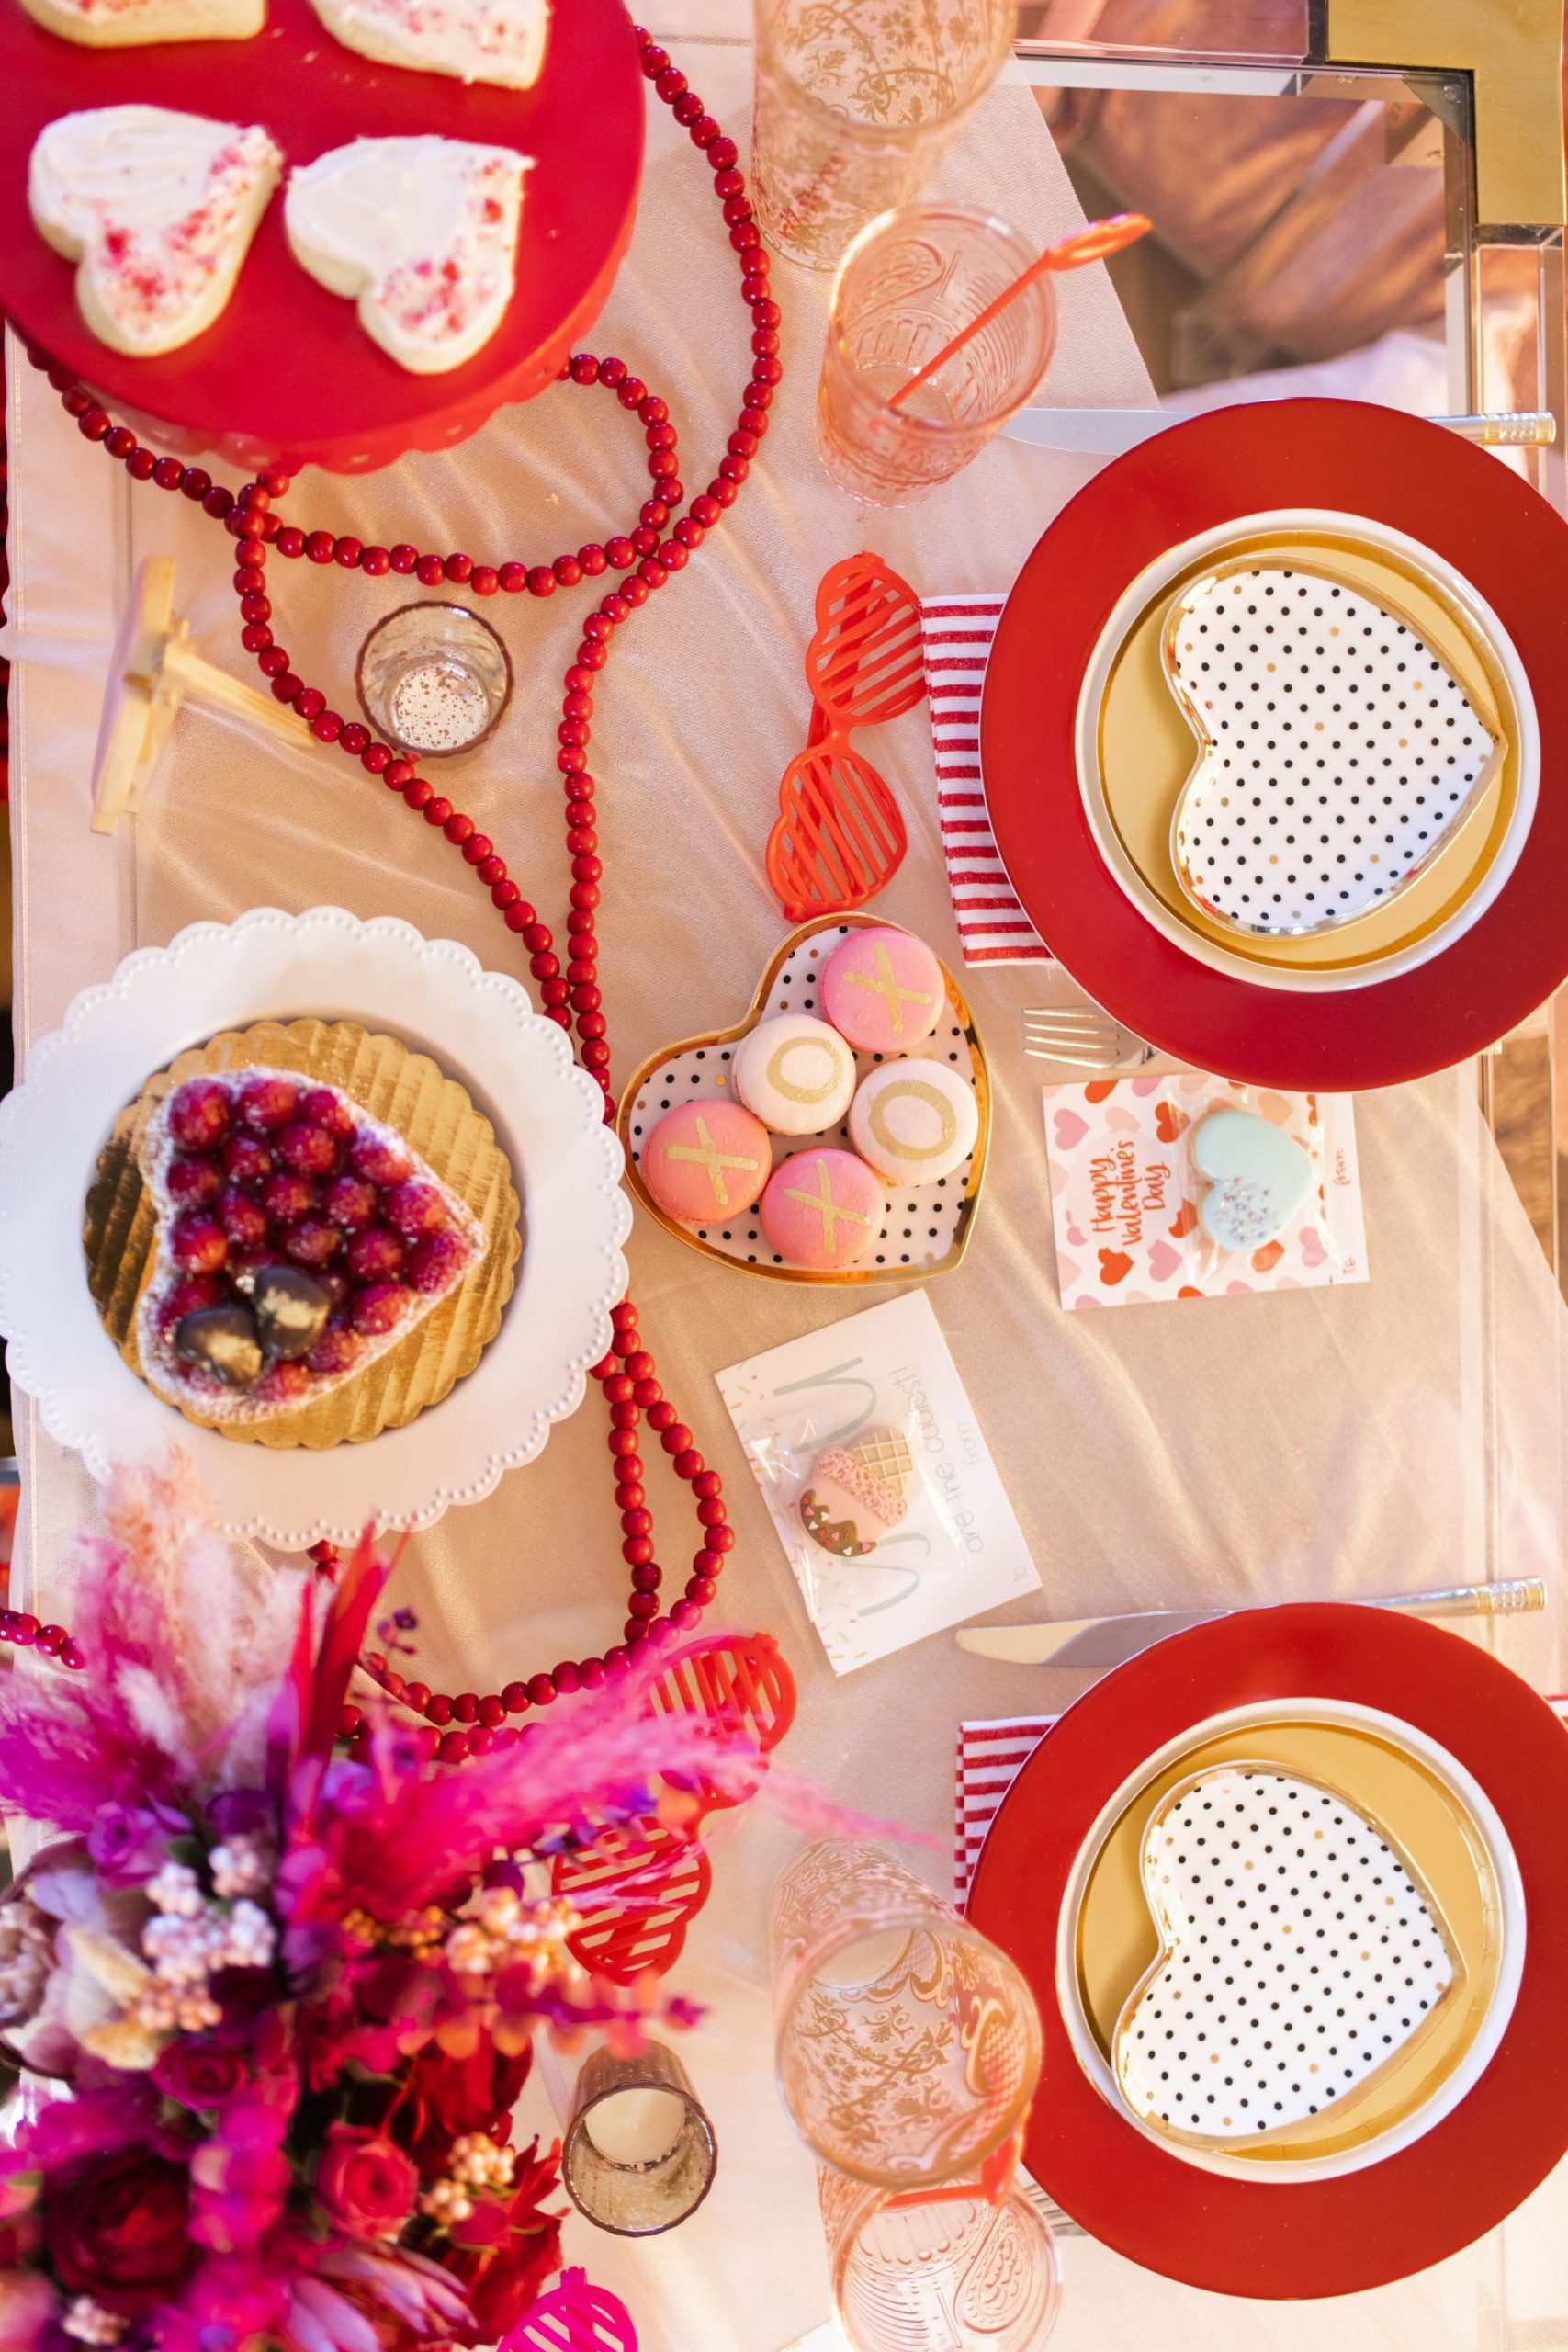 red and pink table setting, valentine's day table setting, galentine's table setting, red and pink party, intimate table setting ideas, girls night table setting, hearts table settings, sweets table decor ideas, pink and red party theme, girly party theme decor, love party theme decor, valentines day party ideas, valentines day party ideas for adults, Red Soles and Red Wine, best desserts in Chicago